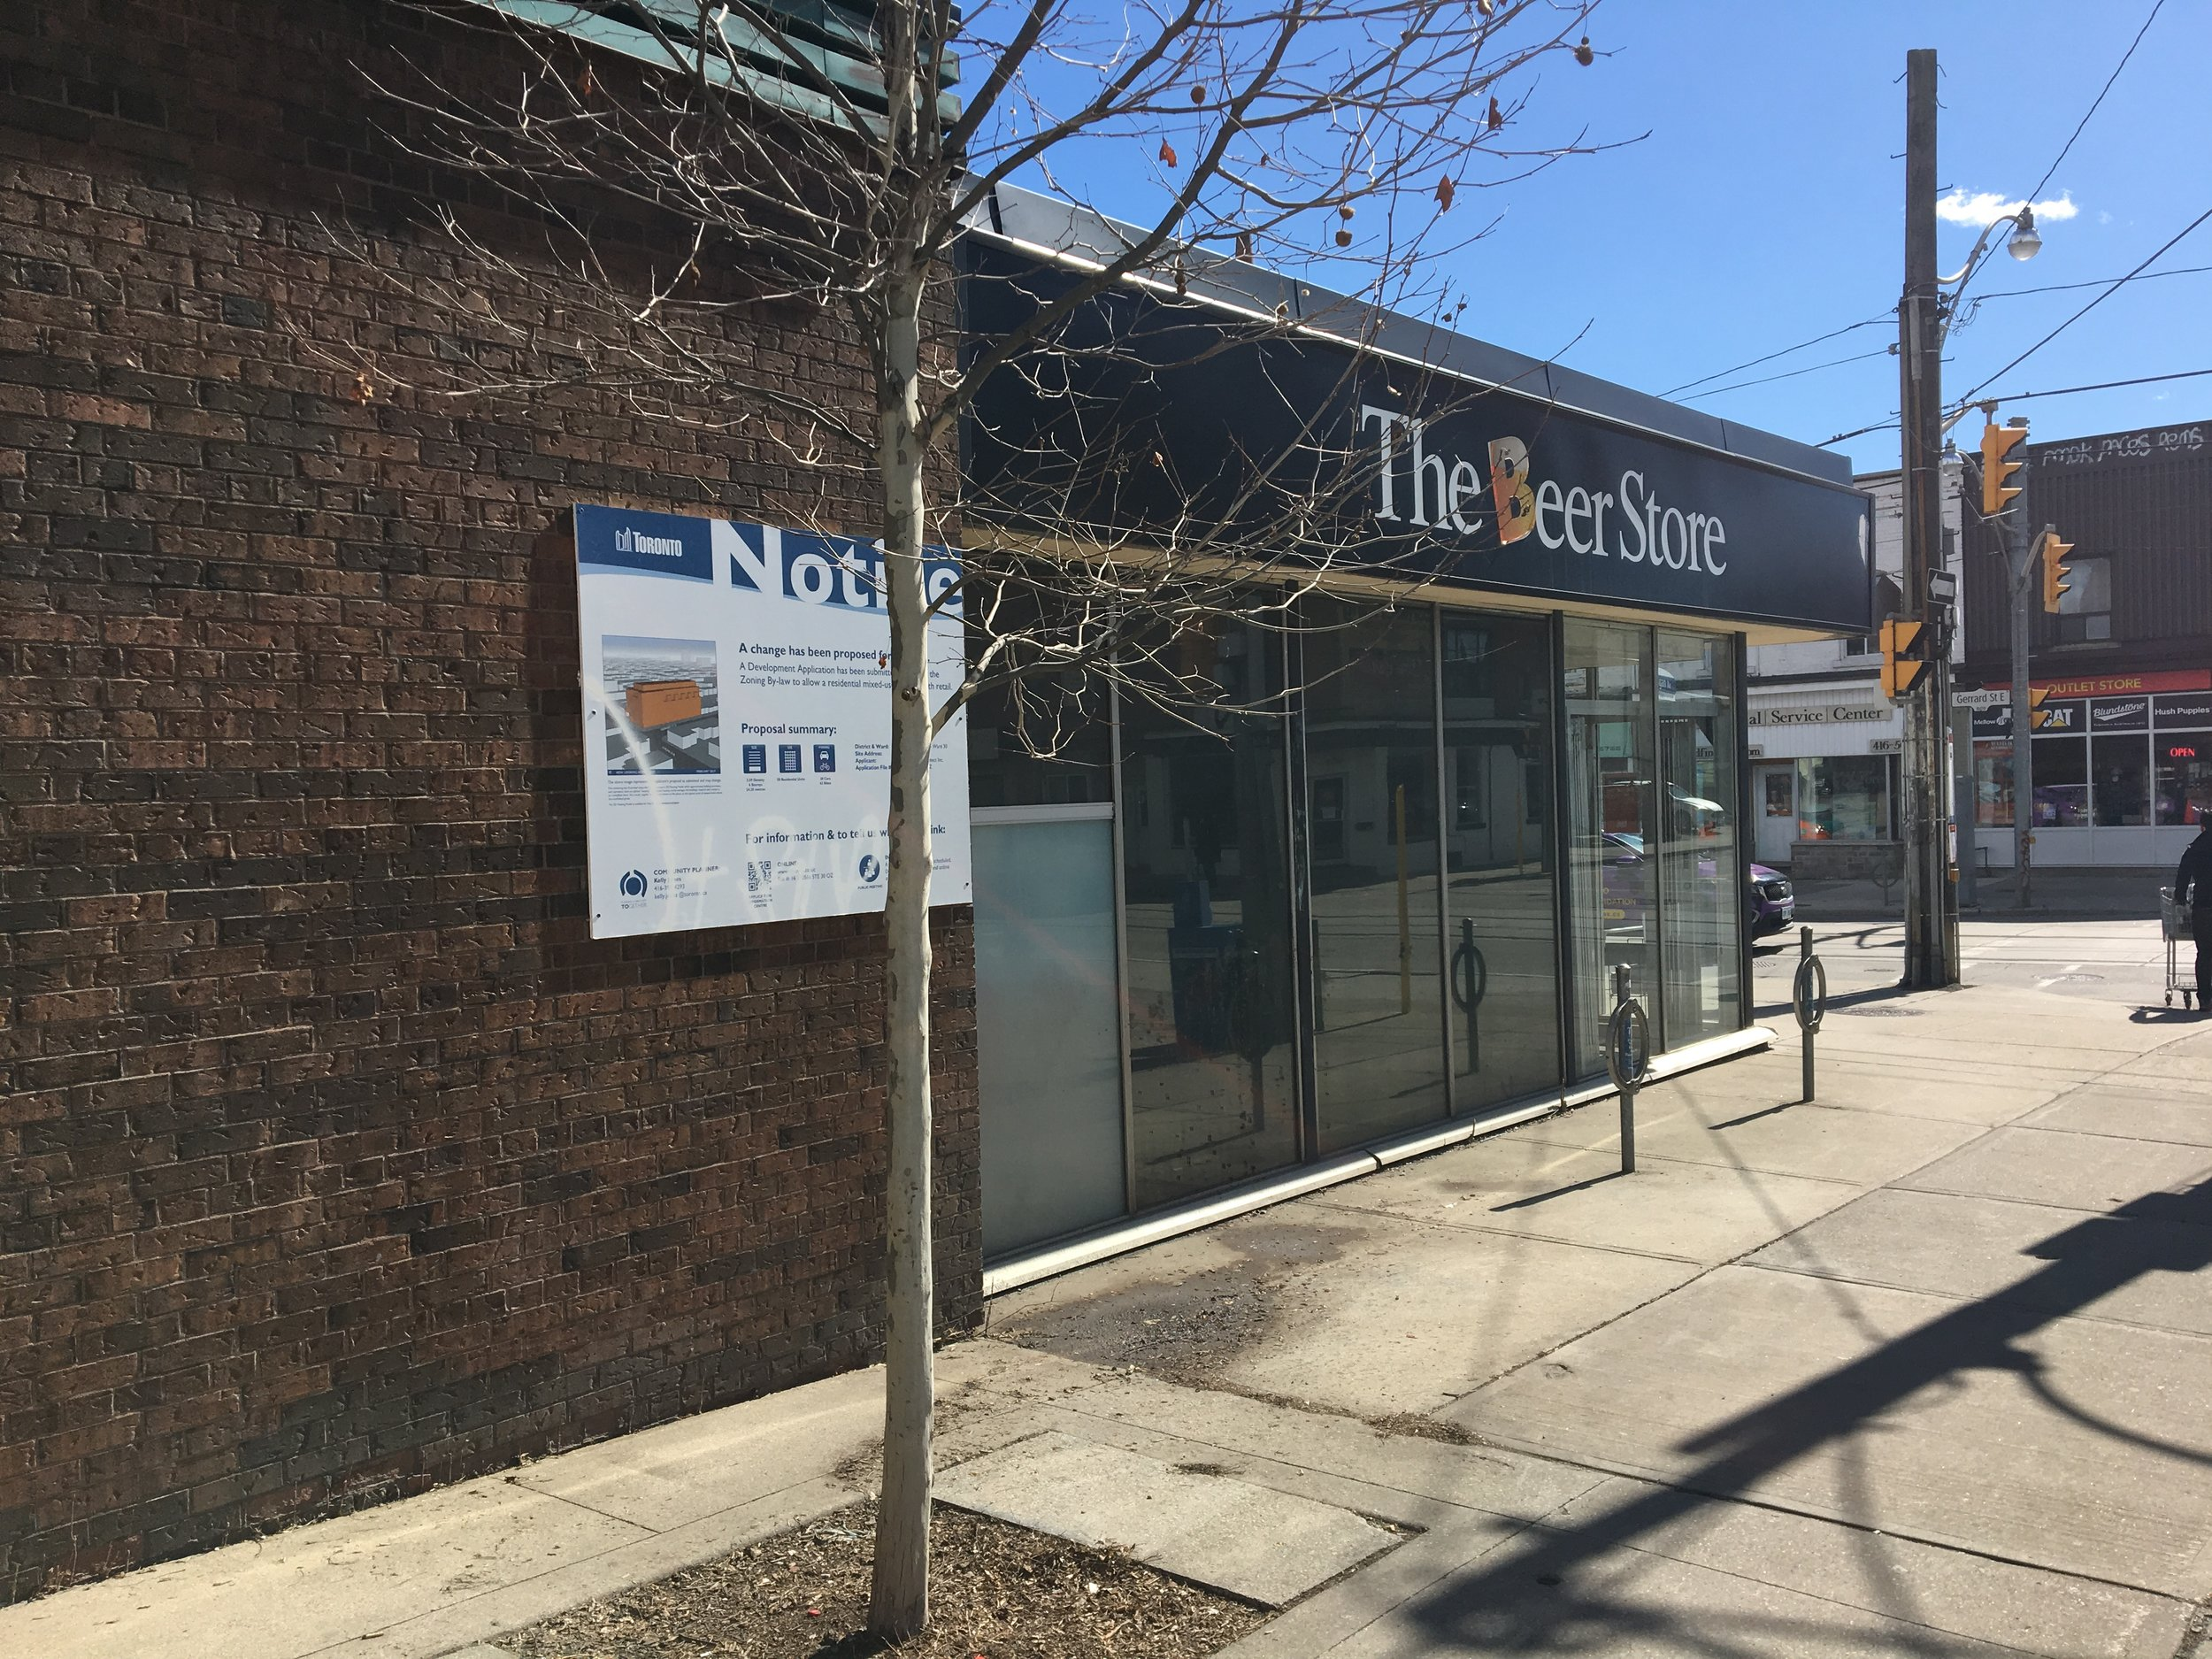 Beer store at Gerrard and Logan redevelopment notice. A six story condo with retail is being planned.